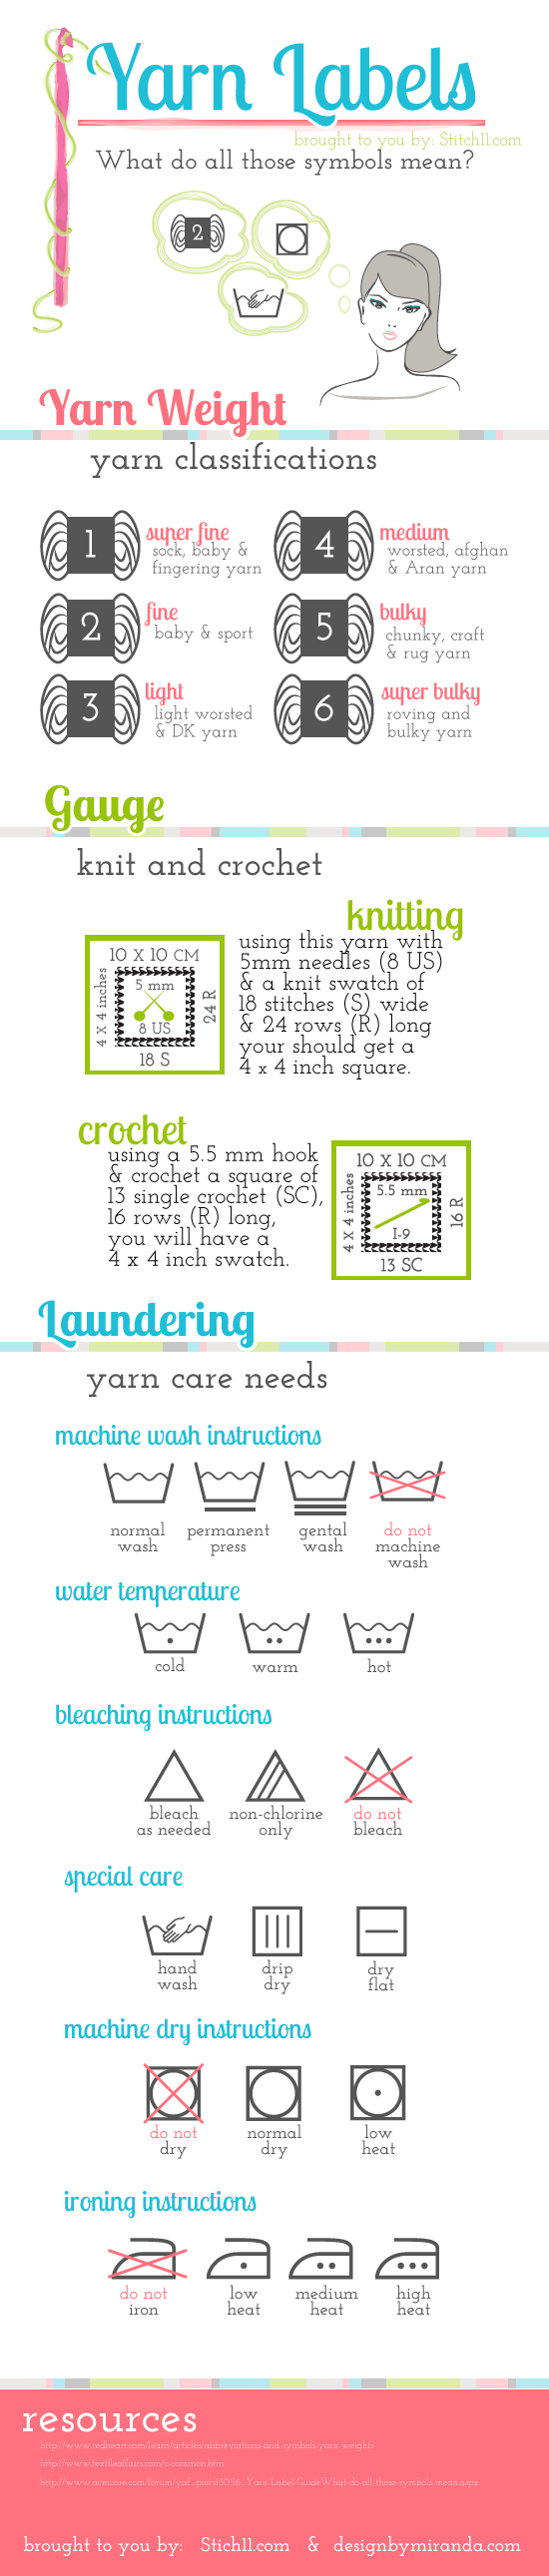 Feature image yarn labels knit this pearl pinterest knitting helpful info yarn label info chart explains the numeric weights and washing symbols useful biocorpaavc Choice Image